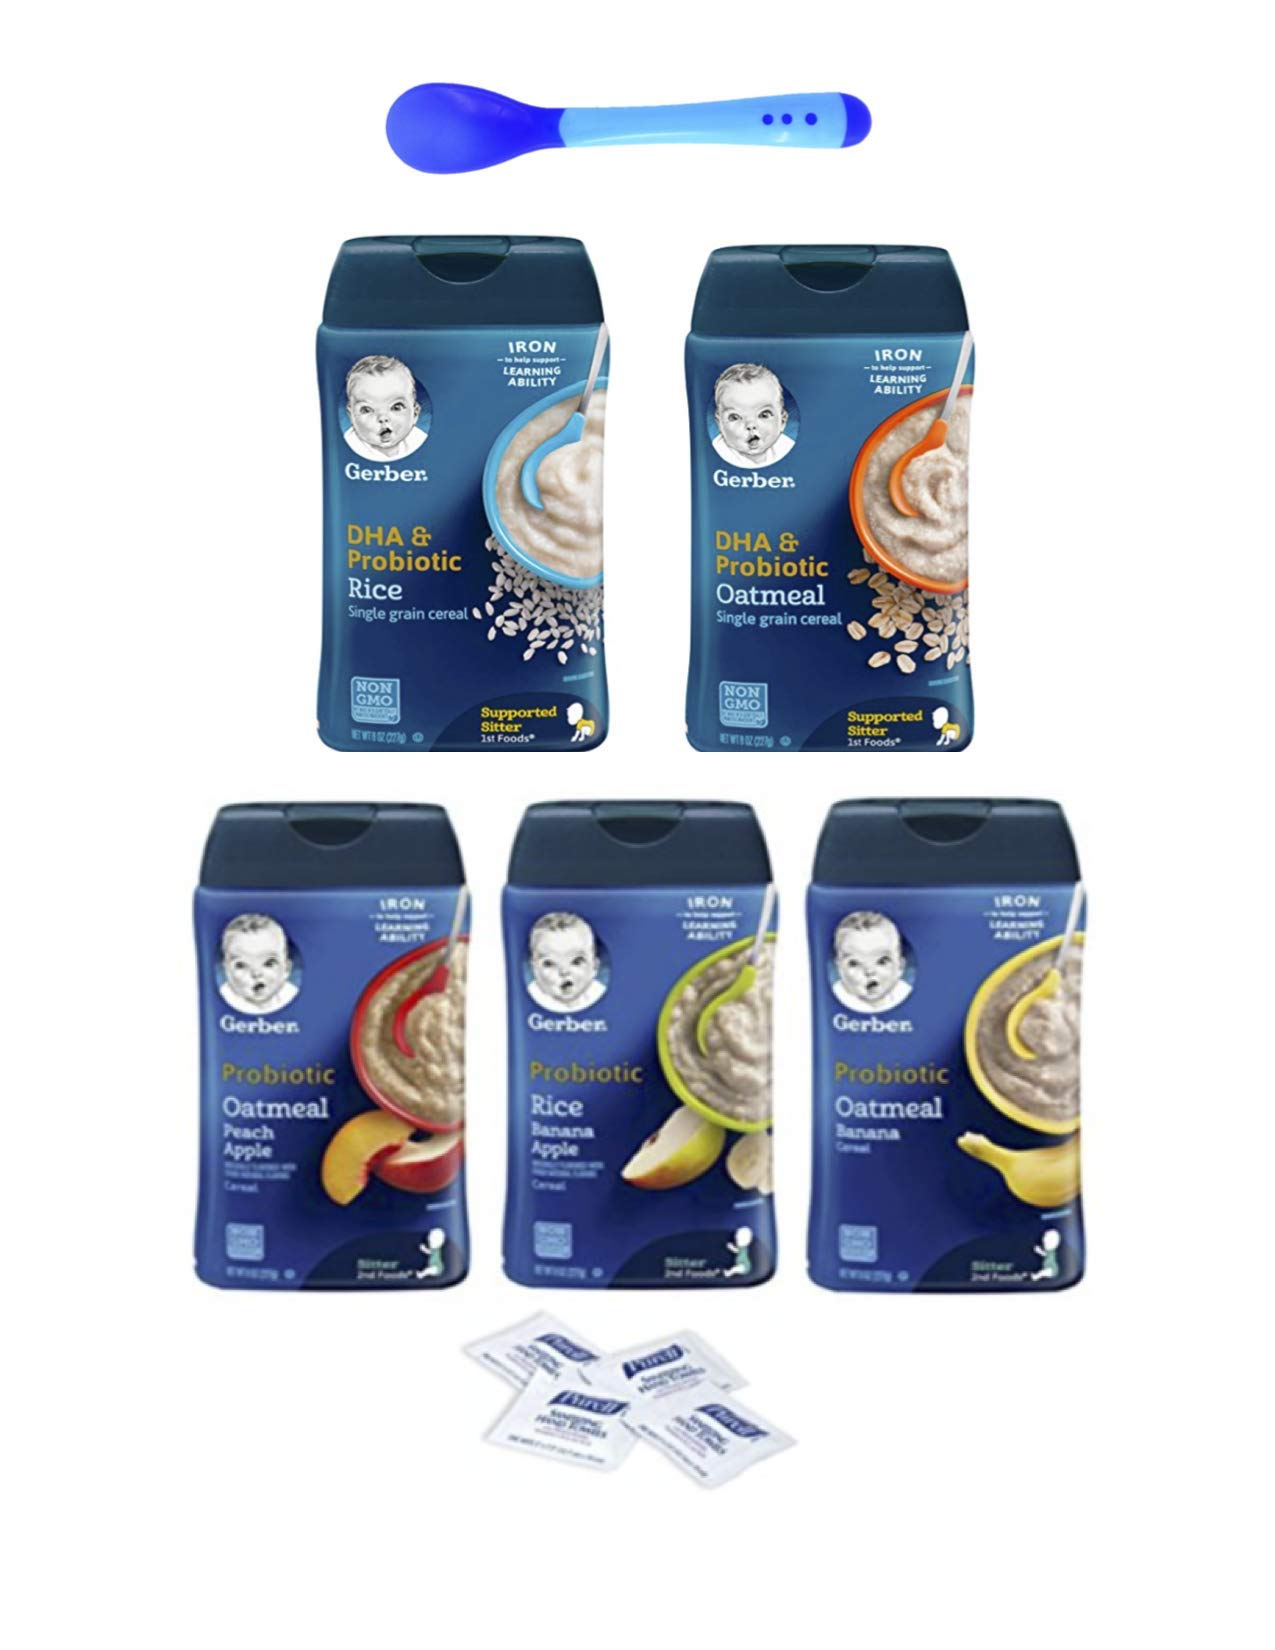 Gerber Baby Cereal Probiotic Super Pack, Oatmeal & Banana, Rice Banana Apple, Oatmeal Peach Apple, DHA Oatmeal, and DHA Rice Baby Cereal Canisters, 8oz. with bonus of 4 Purell Hand Sanitizing Wipes by Gerber